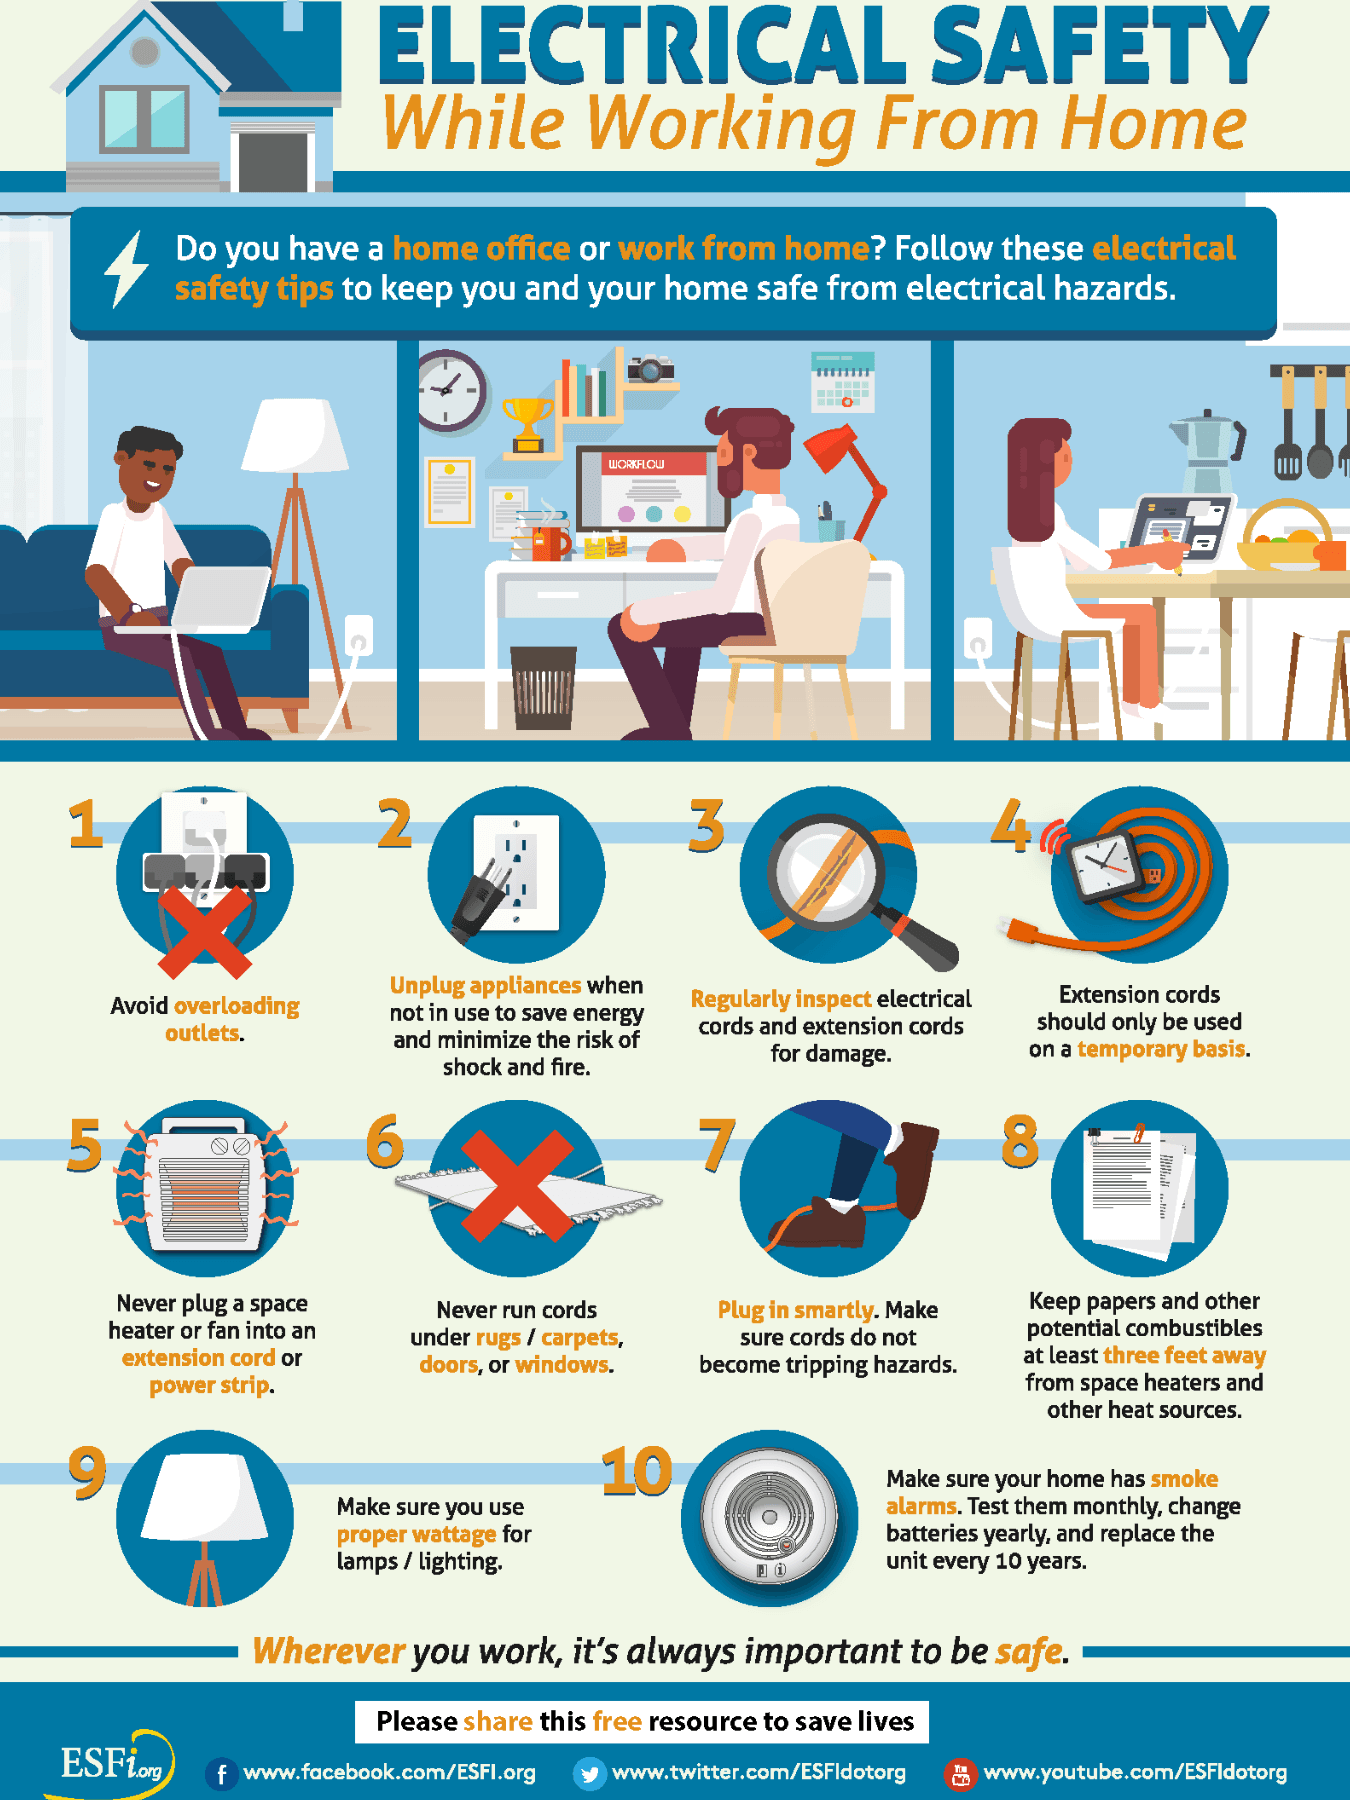 Electrical Safety While Working From Home - ESFI.org